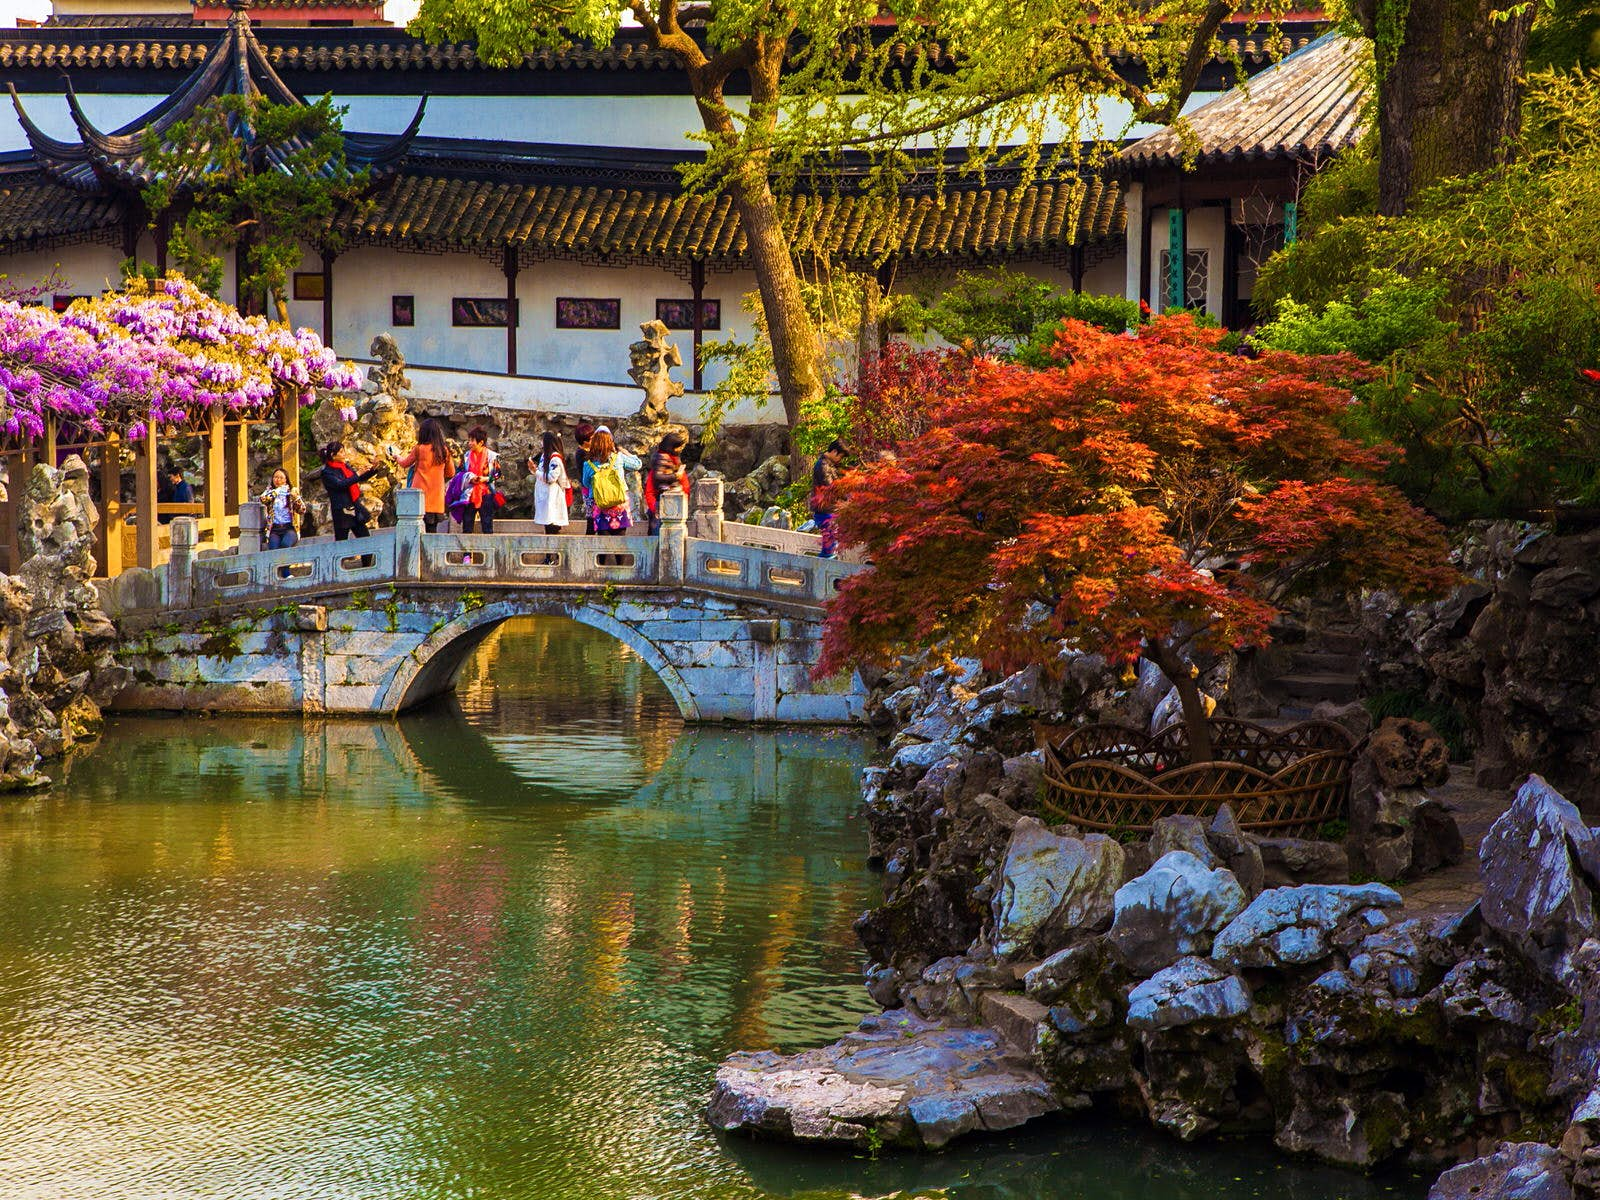 A pond with small stone bridge and covered walkway in the background, framed by red-leafed trees. Classical Chinese landscape architecture – marked by pavilions, covered walkways, rock features and ponds – was developed in Suzhou © Meiqianbao / Shutterstock